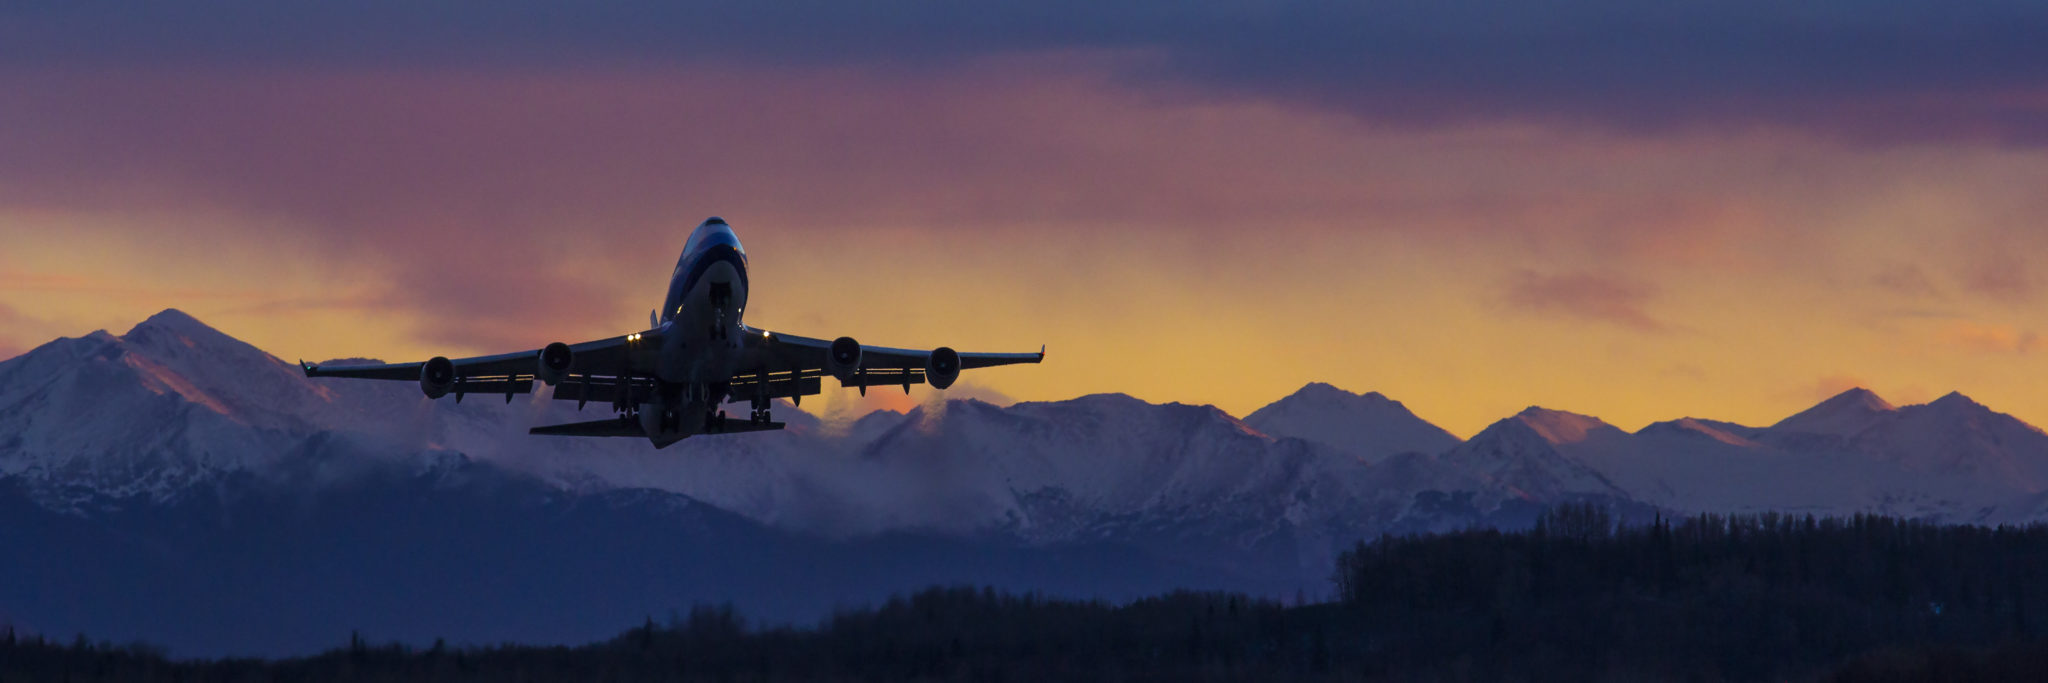 Best Aircraft photography of Alaska| Alaskafoto- Alaska Air cargo, portrait photographers of Alaska